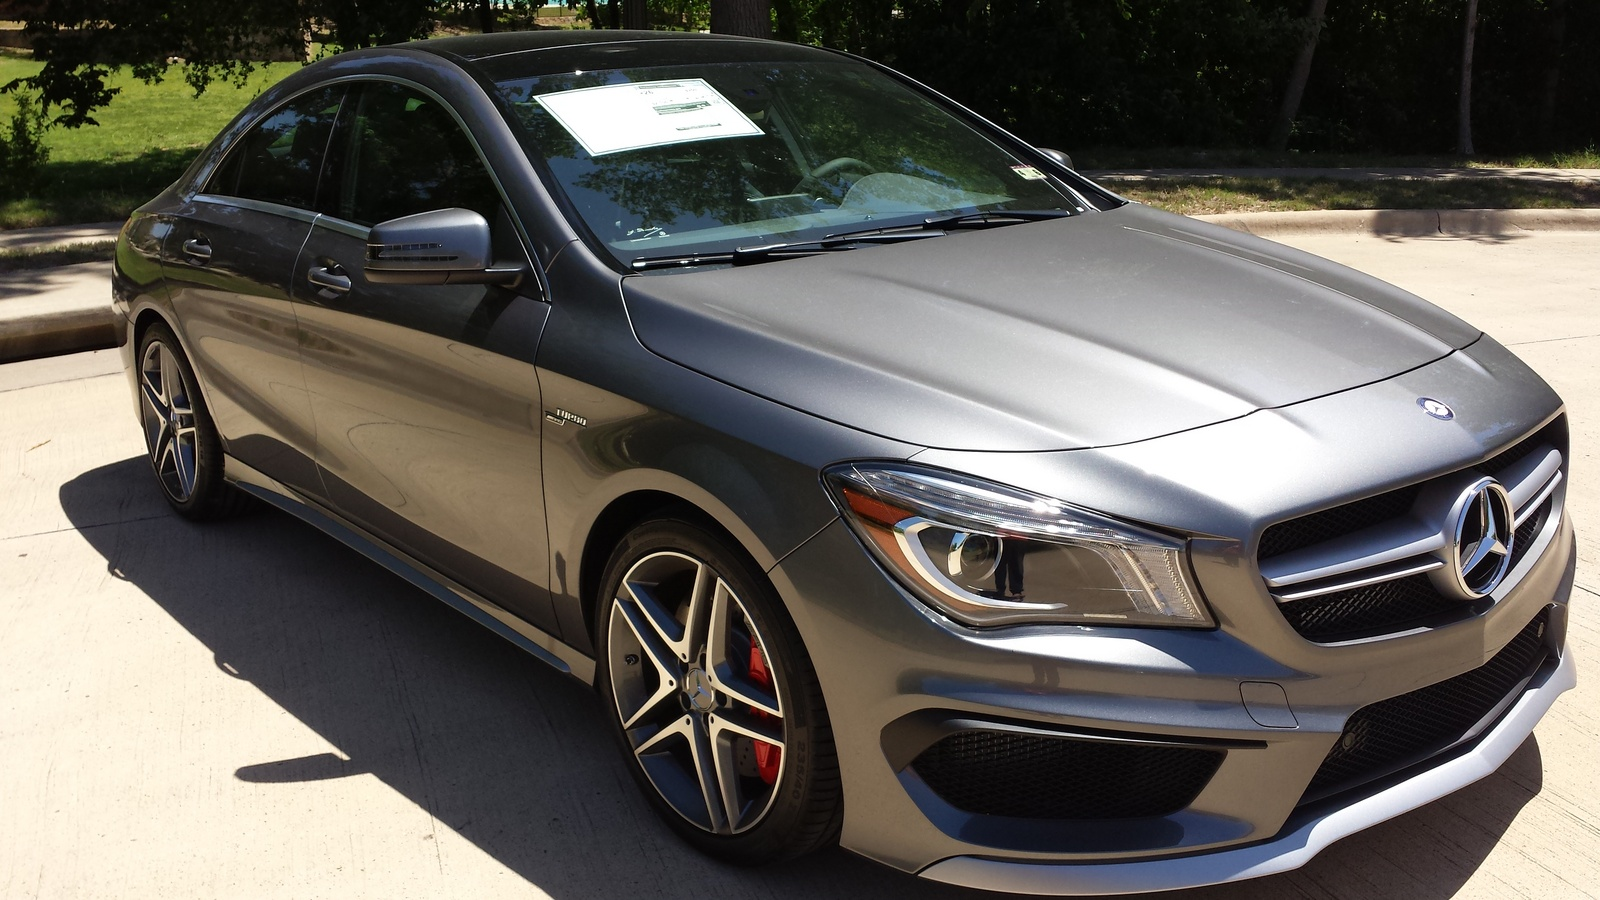 2014 mercedes benz cla class pictures cargurus for 2014 mercedes benz cla specs